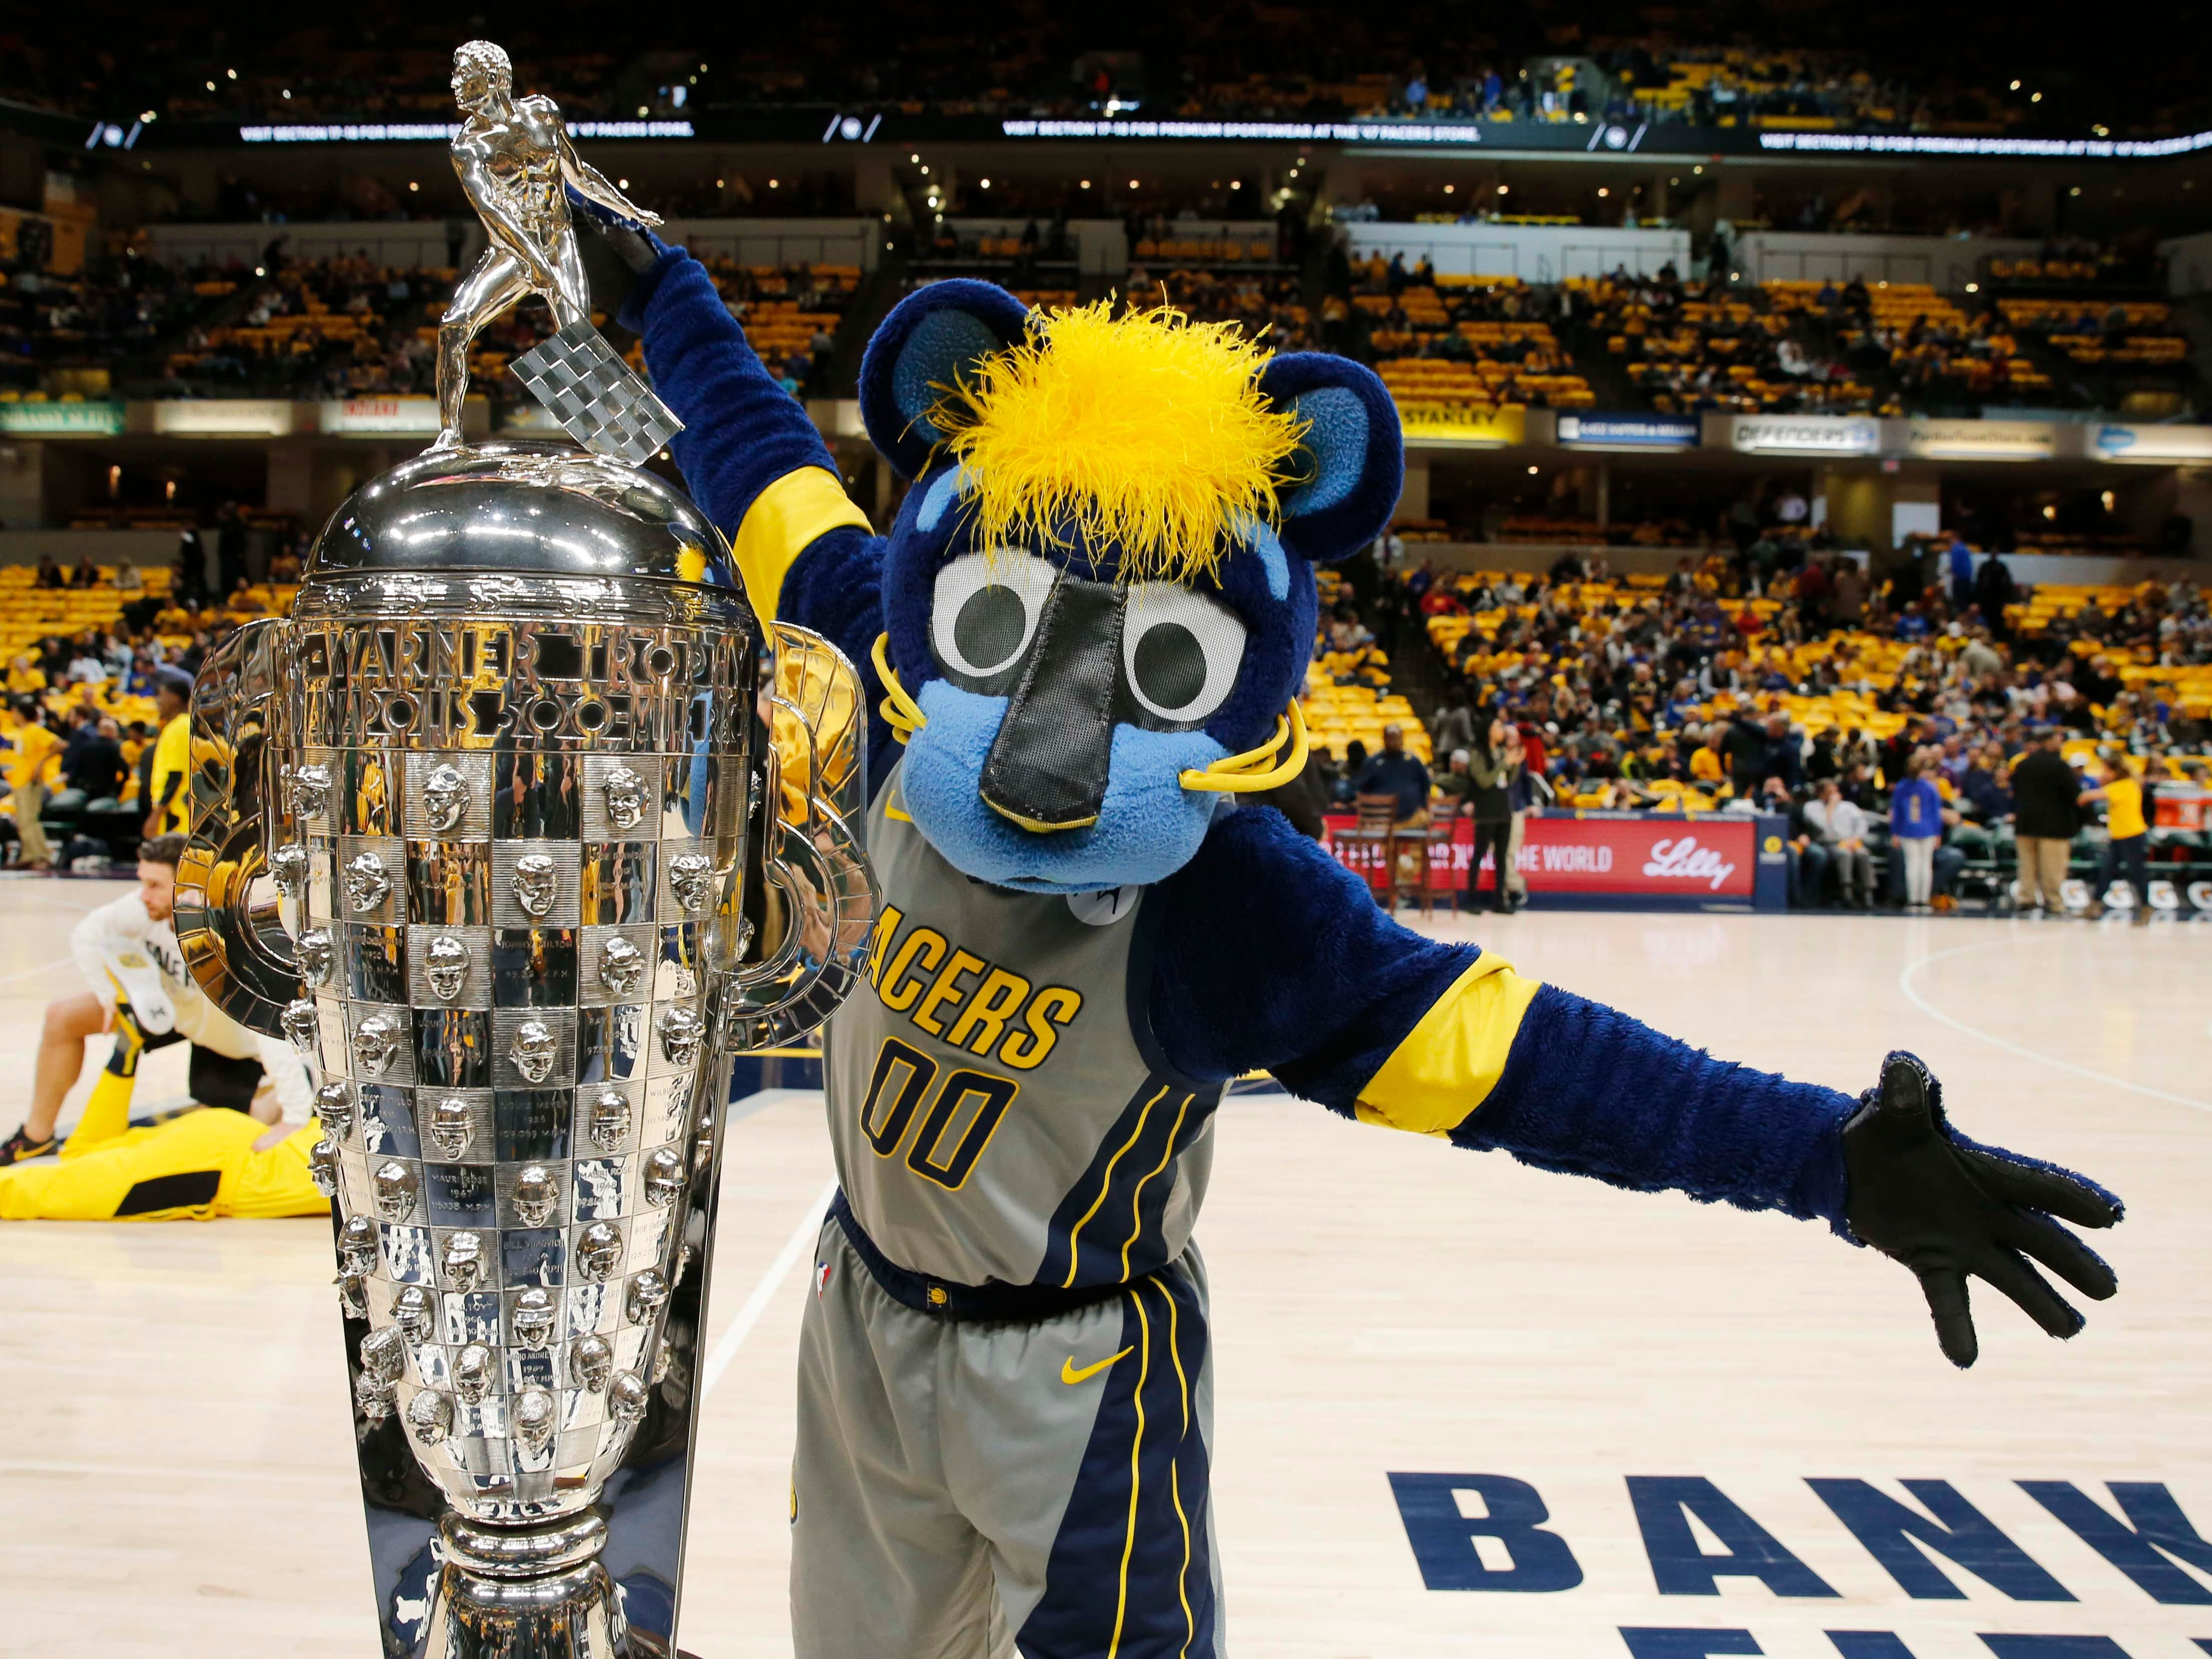 Jan. 28: Pacers mascot Boomer shows off the Borg Warner Trophy, awarded to the winner of the Indianapolis 500, before the Pacers play the Warriors at Bankers Life Fieldhouse.